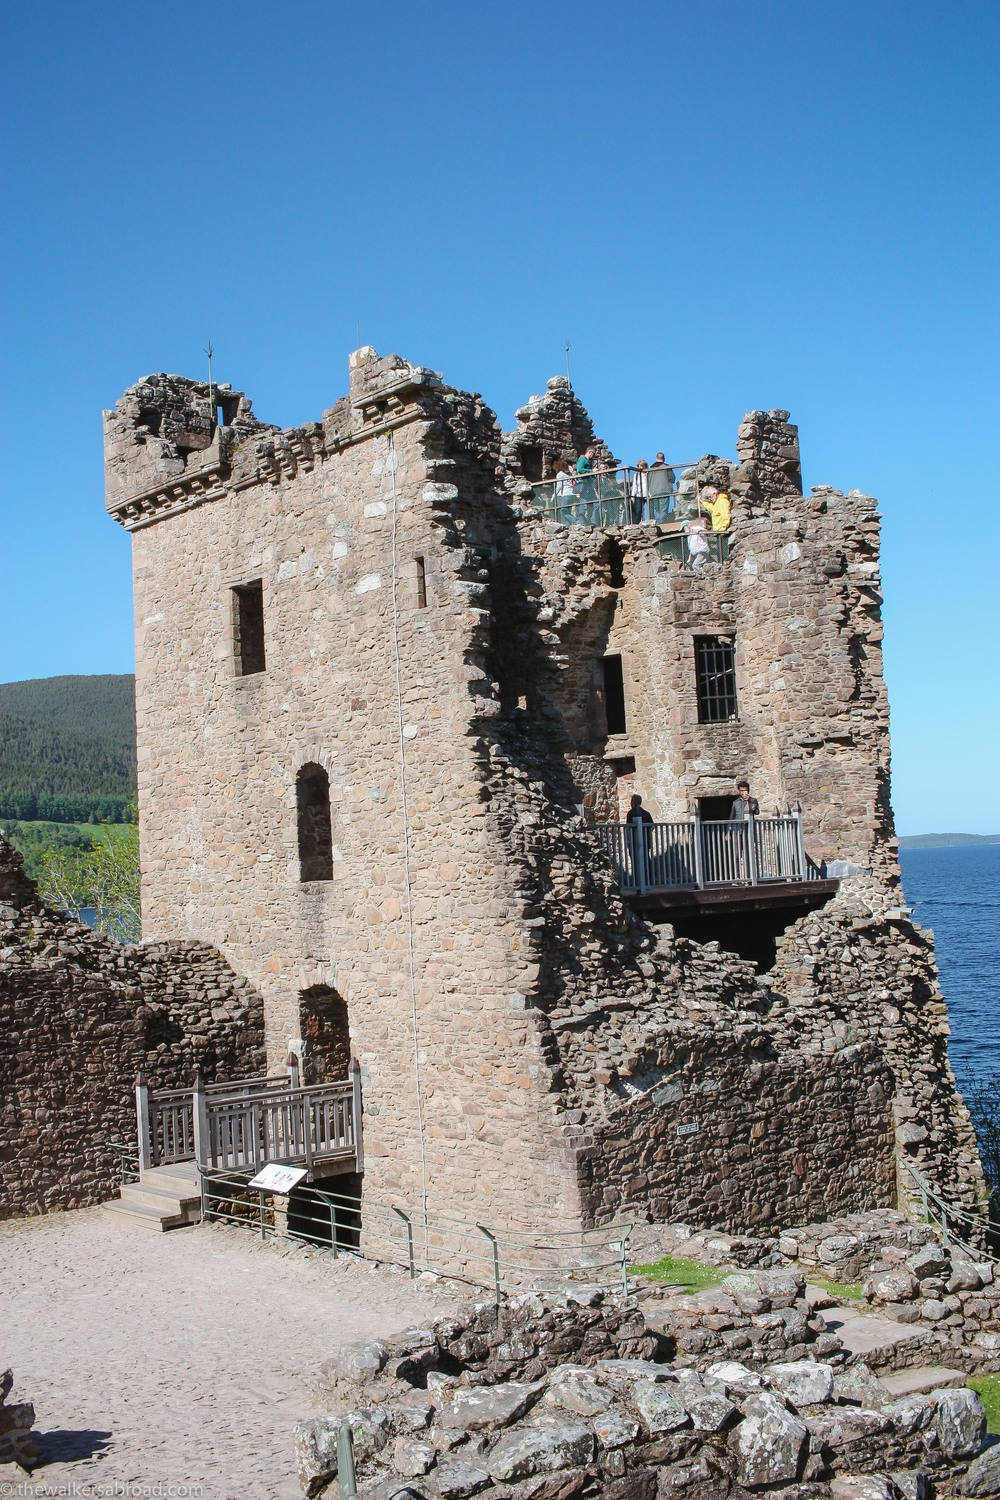 The Grant Tower at Urquhart Castle